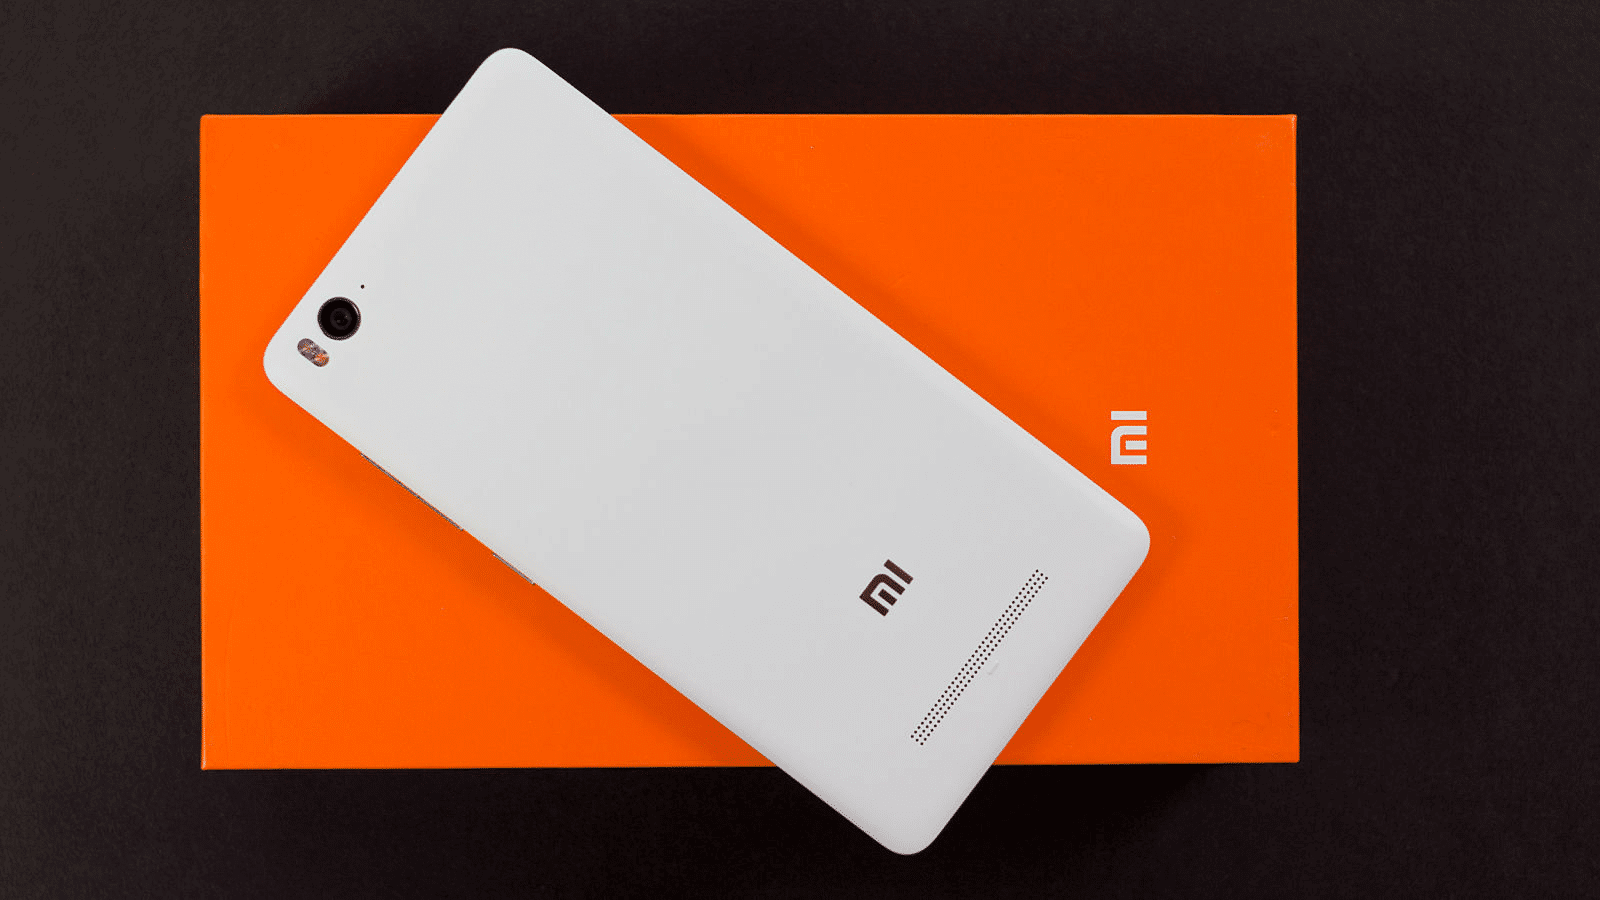 How To Install Official Lineage OS 14.1 Android 7.1.2 Nougat On Xiaomi 4 C 1